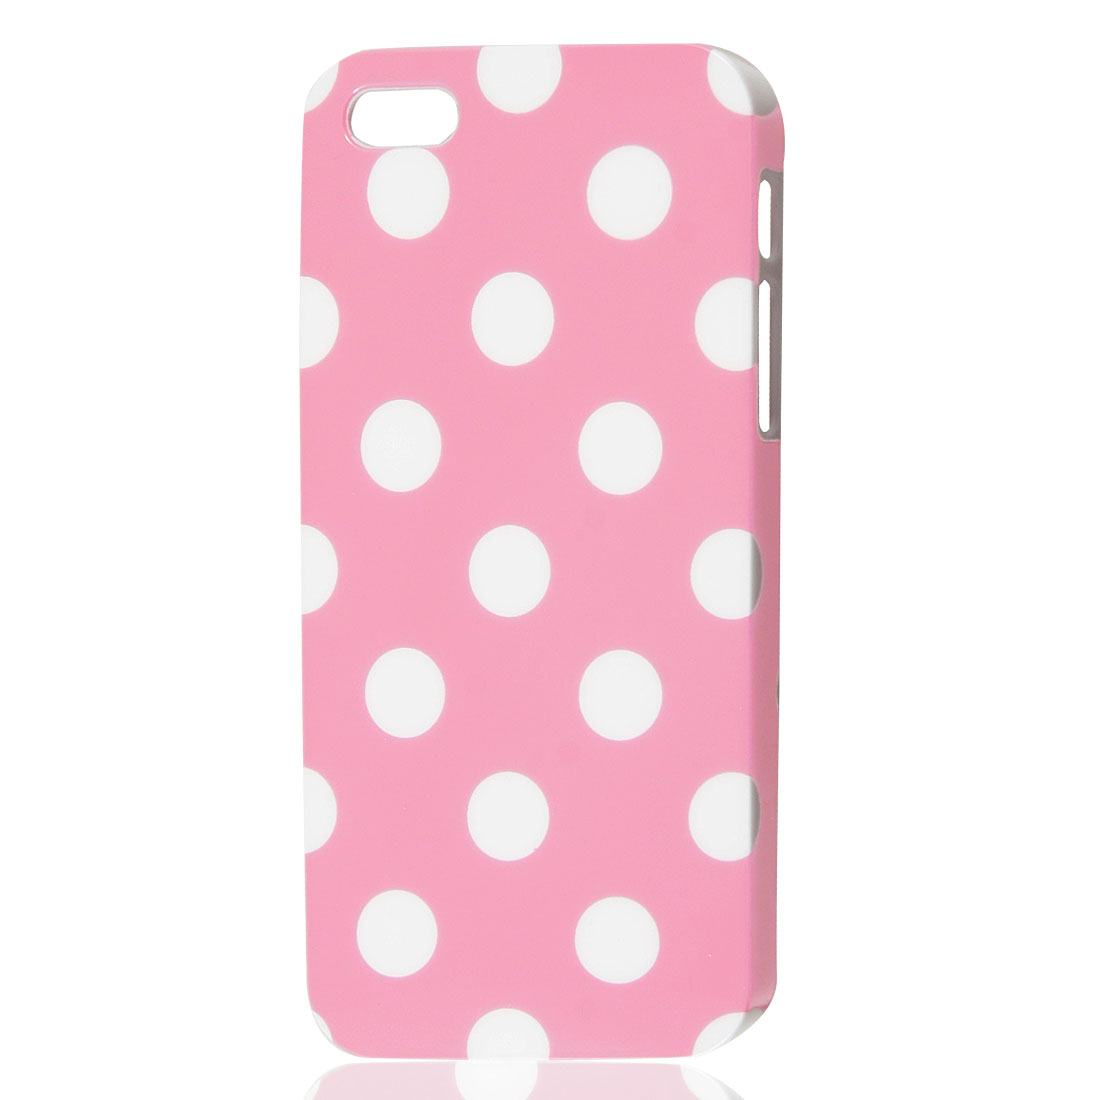 White Polka Dots Pattern Pink Protective Skin Case Cover for iPhone 5 5G